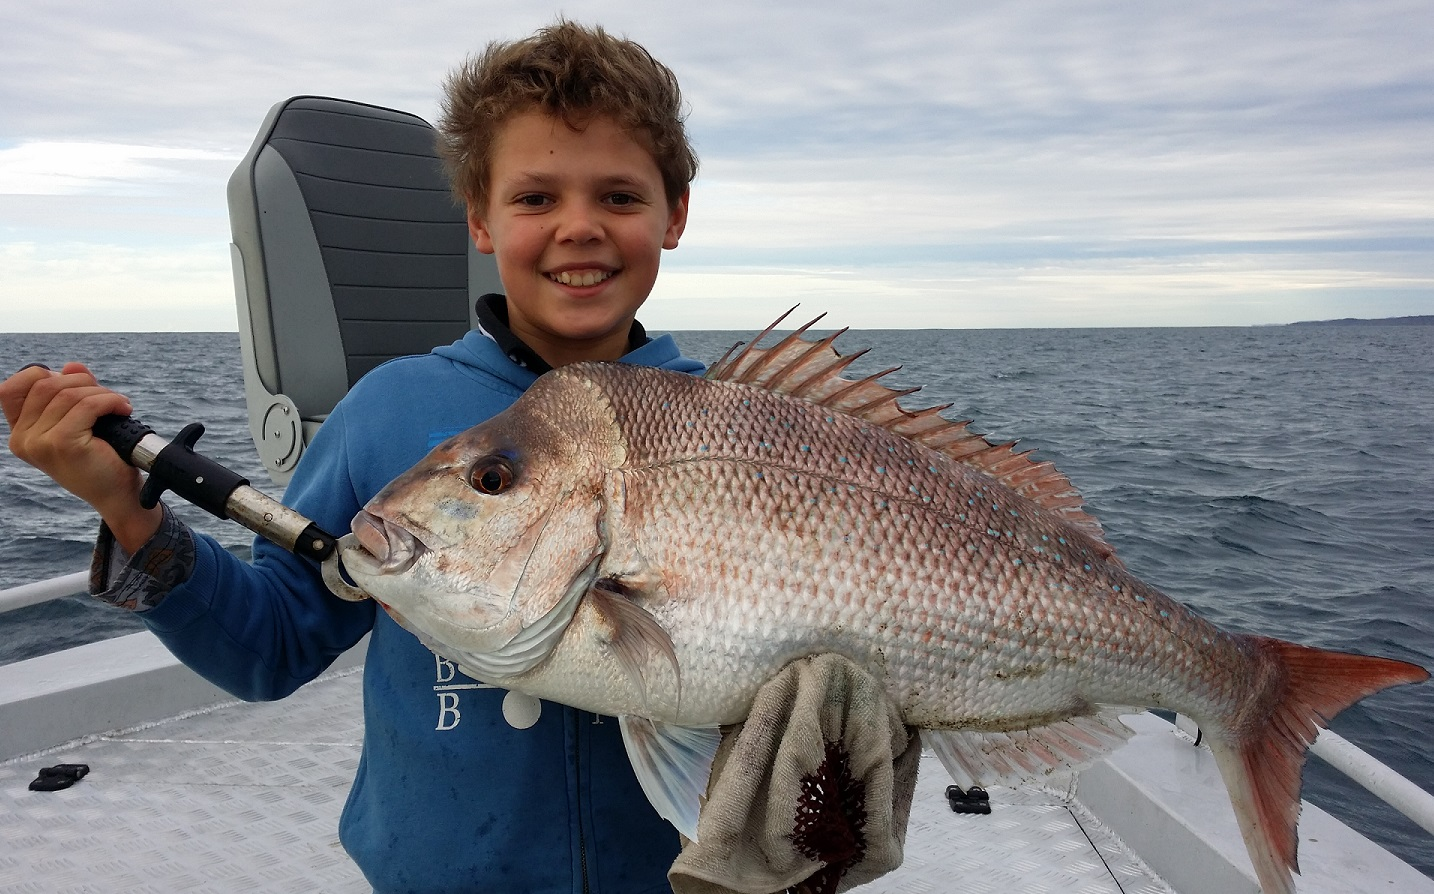 Angus with an 80cm snapper.